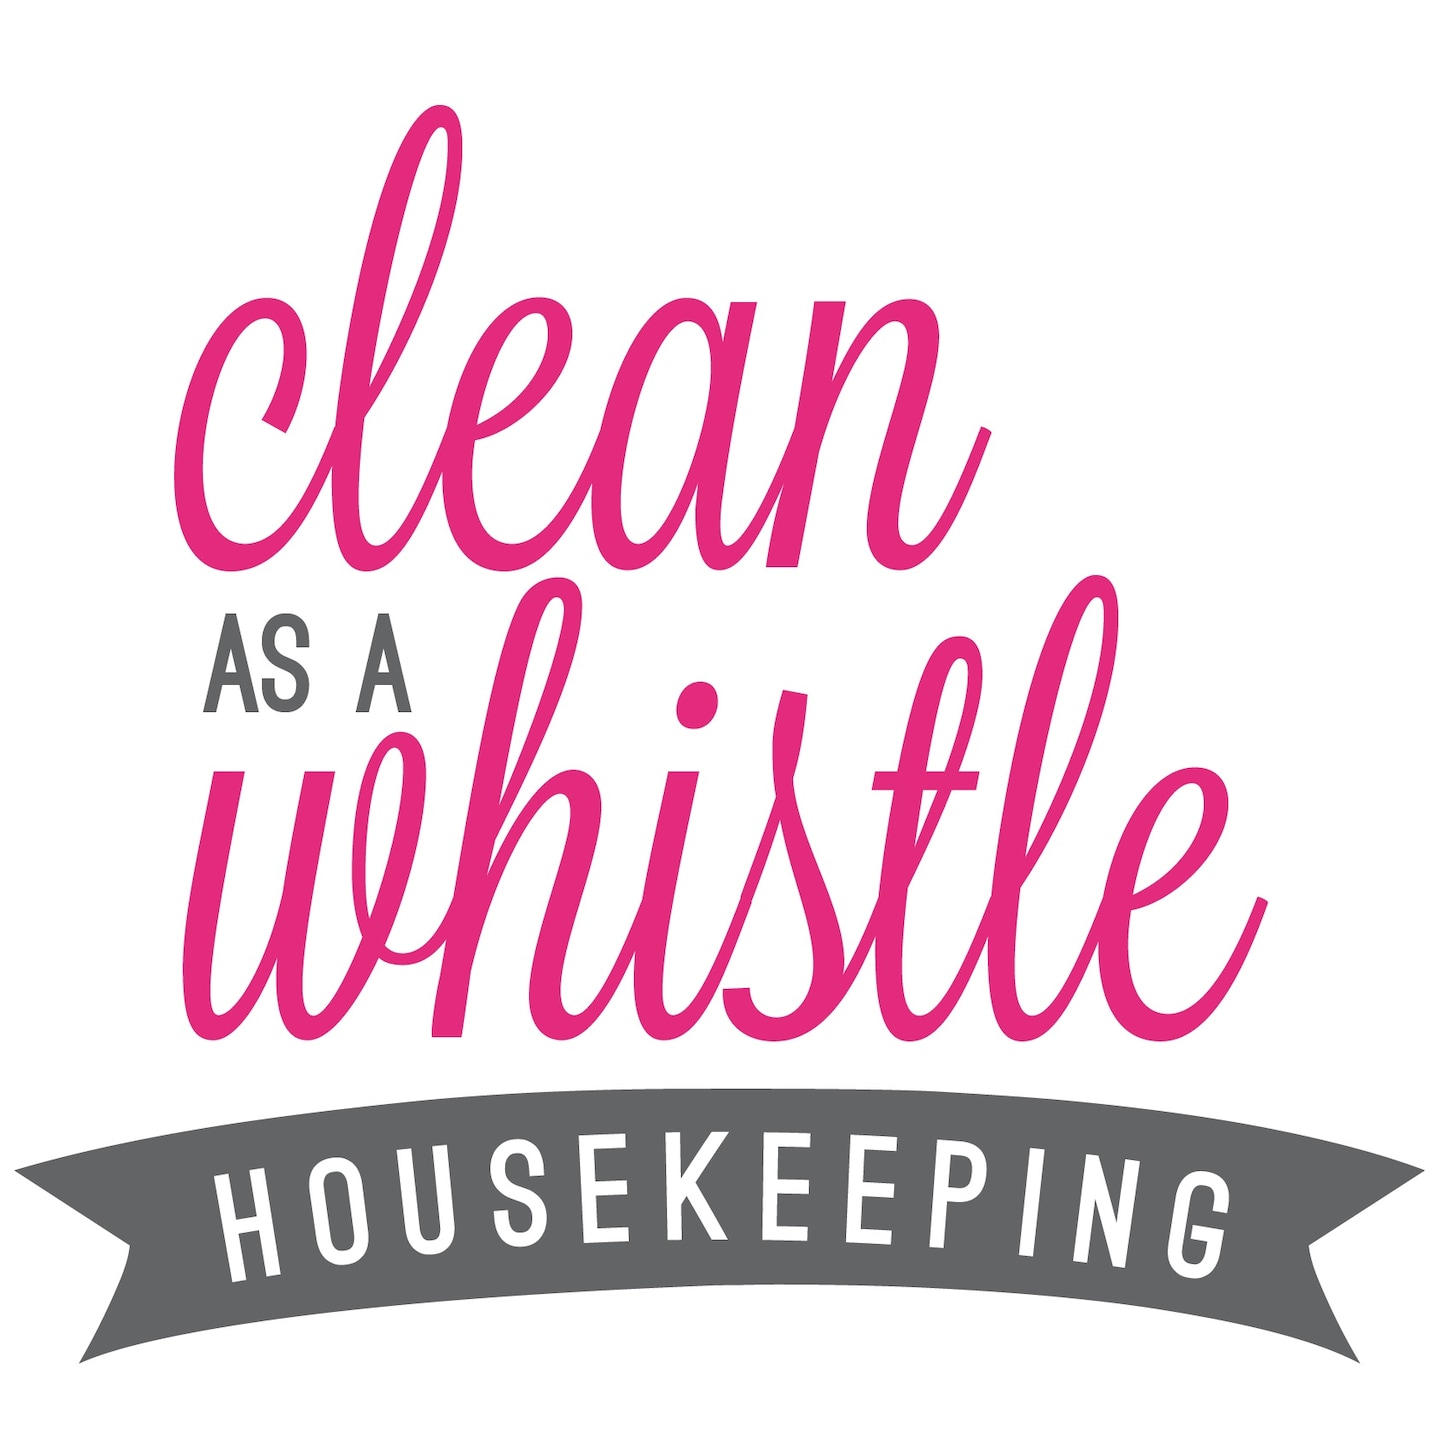 Clean As A Whistle Housekeeping